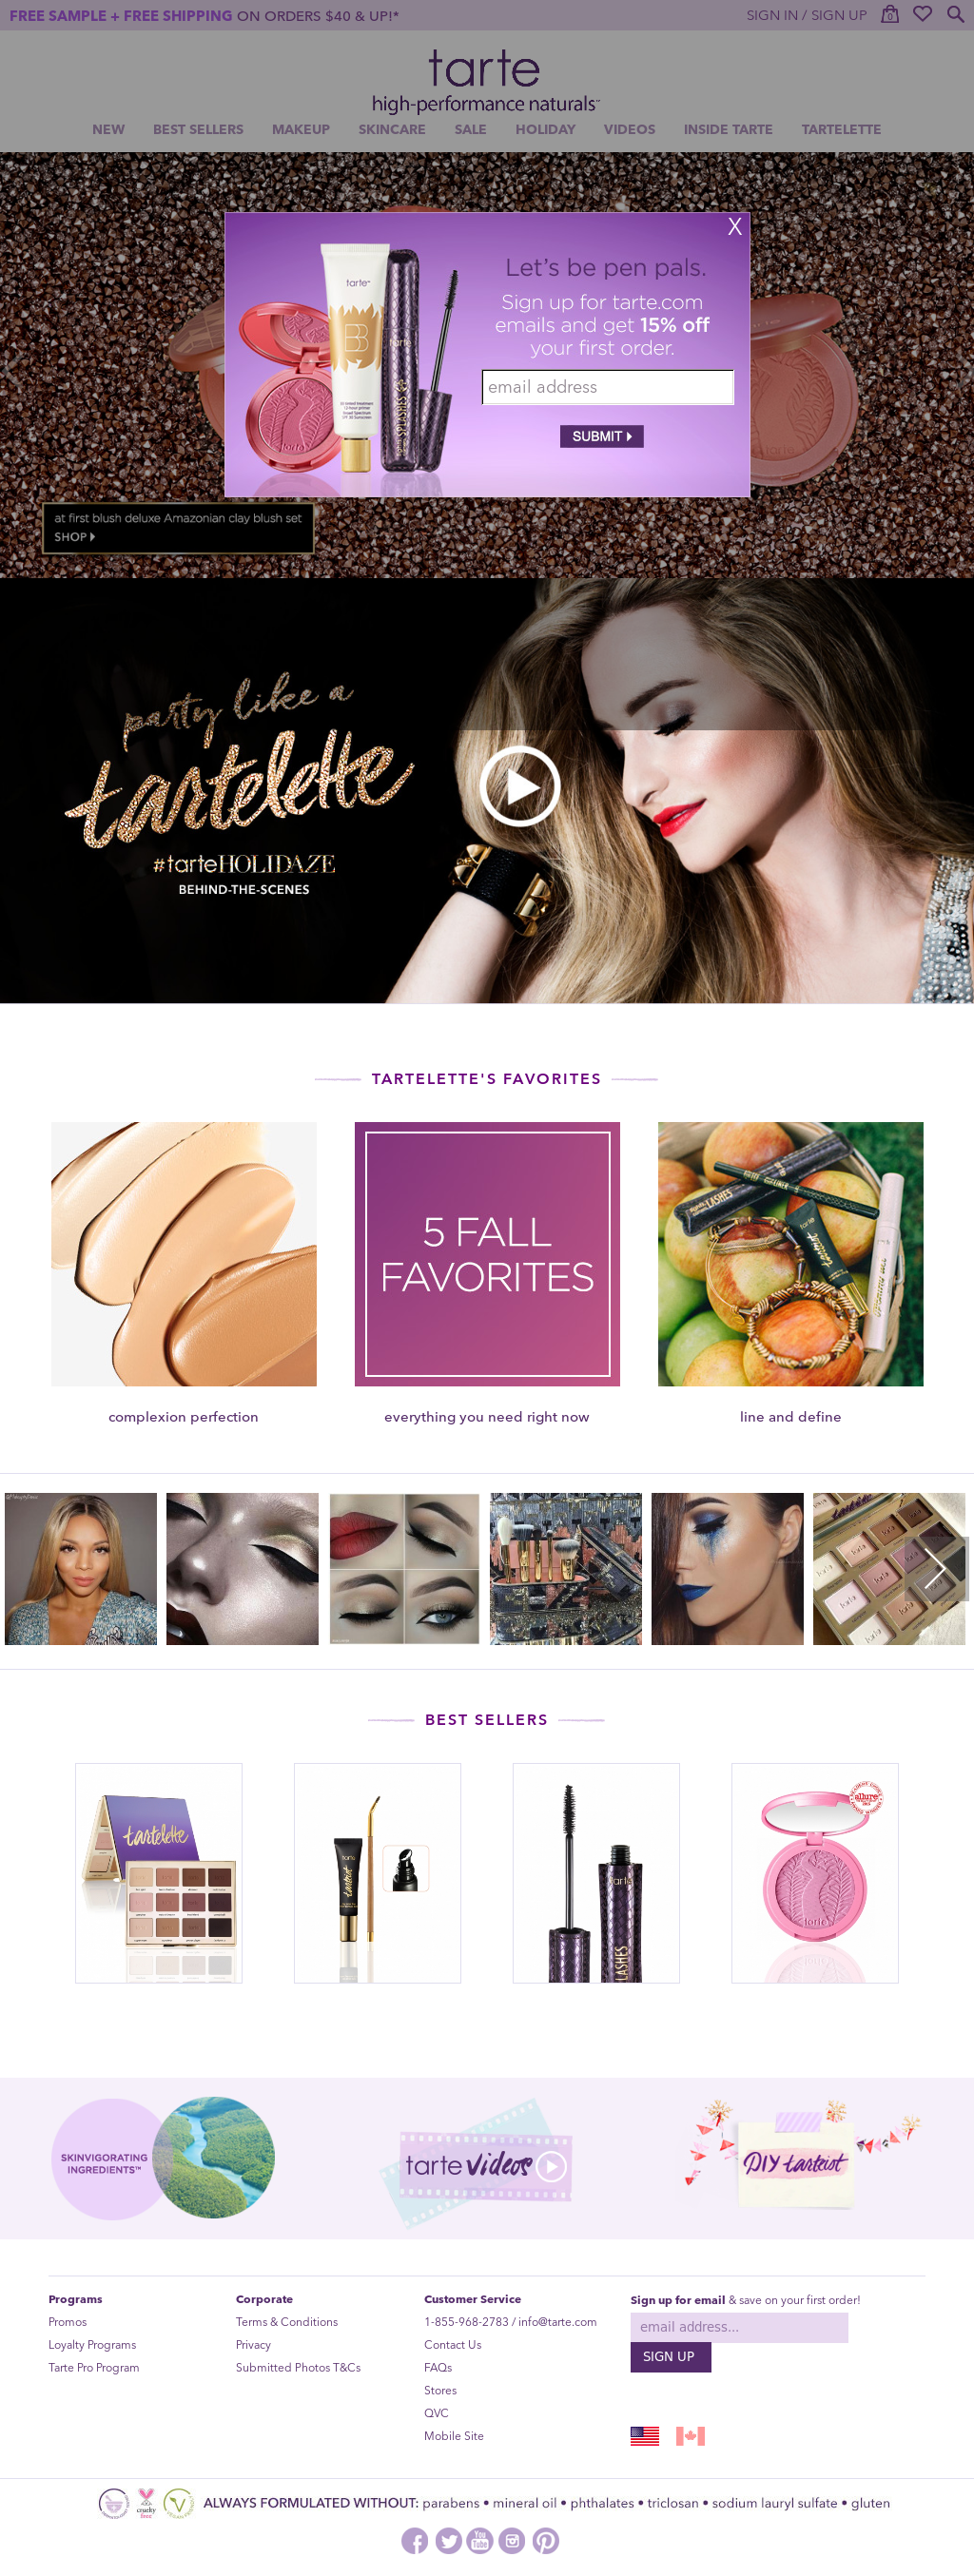 Tarte Cosmetics Competitors, Revenue and Employees - Owler